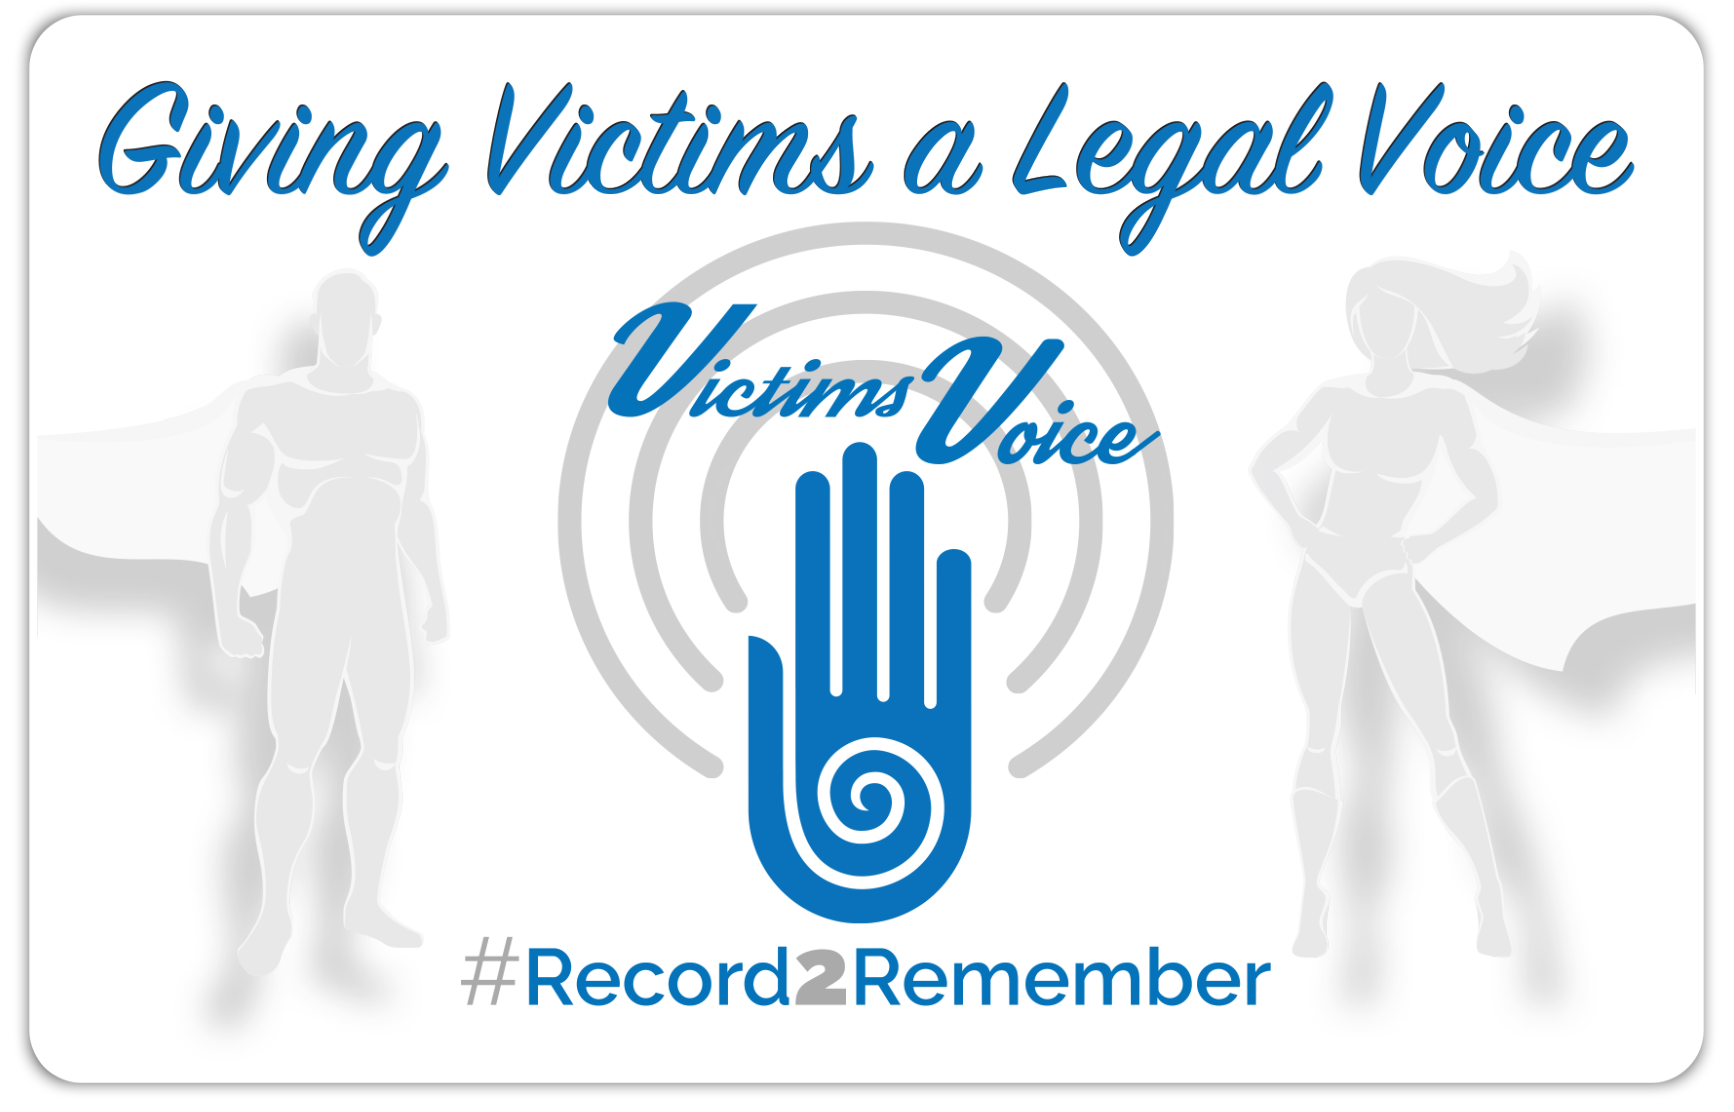 VictimsVoice Activation Card for the Partner Program